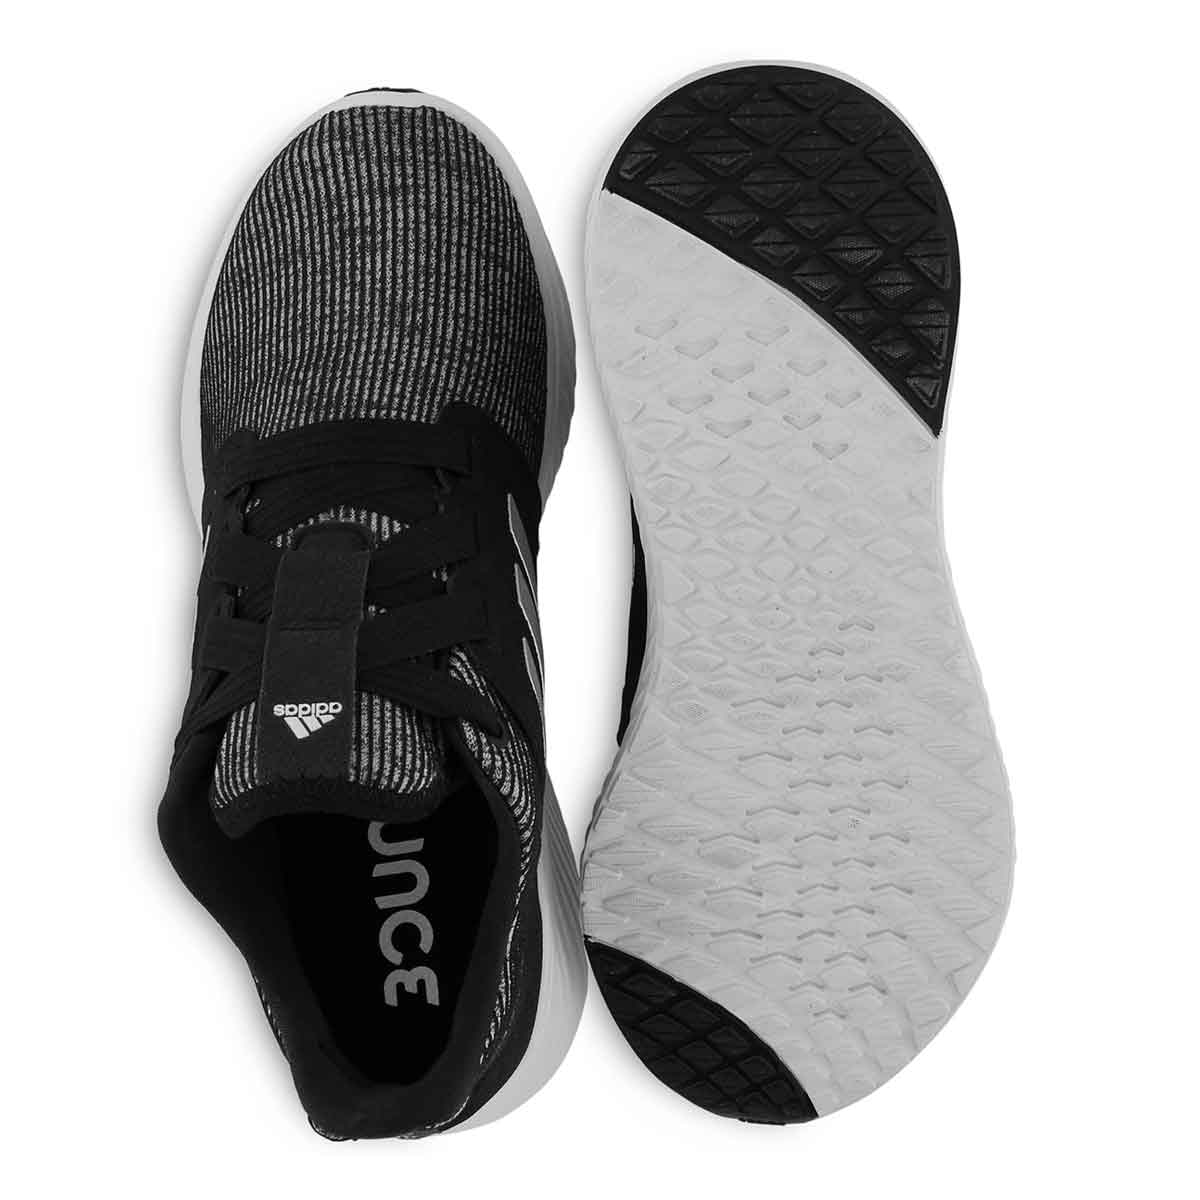 Lds Edge Lux 3 W blk/wht running shoe